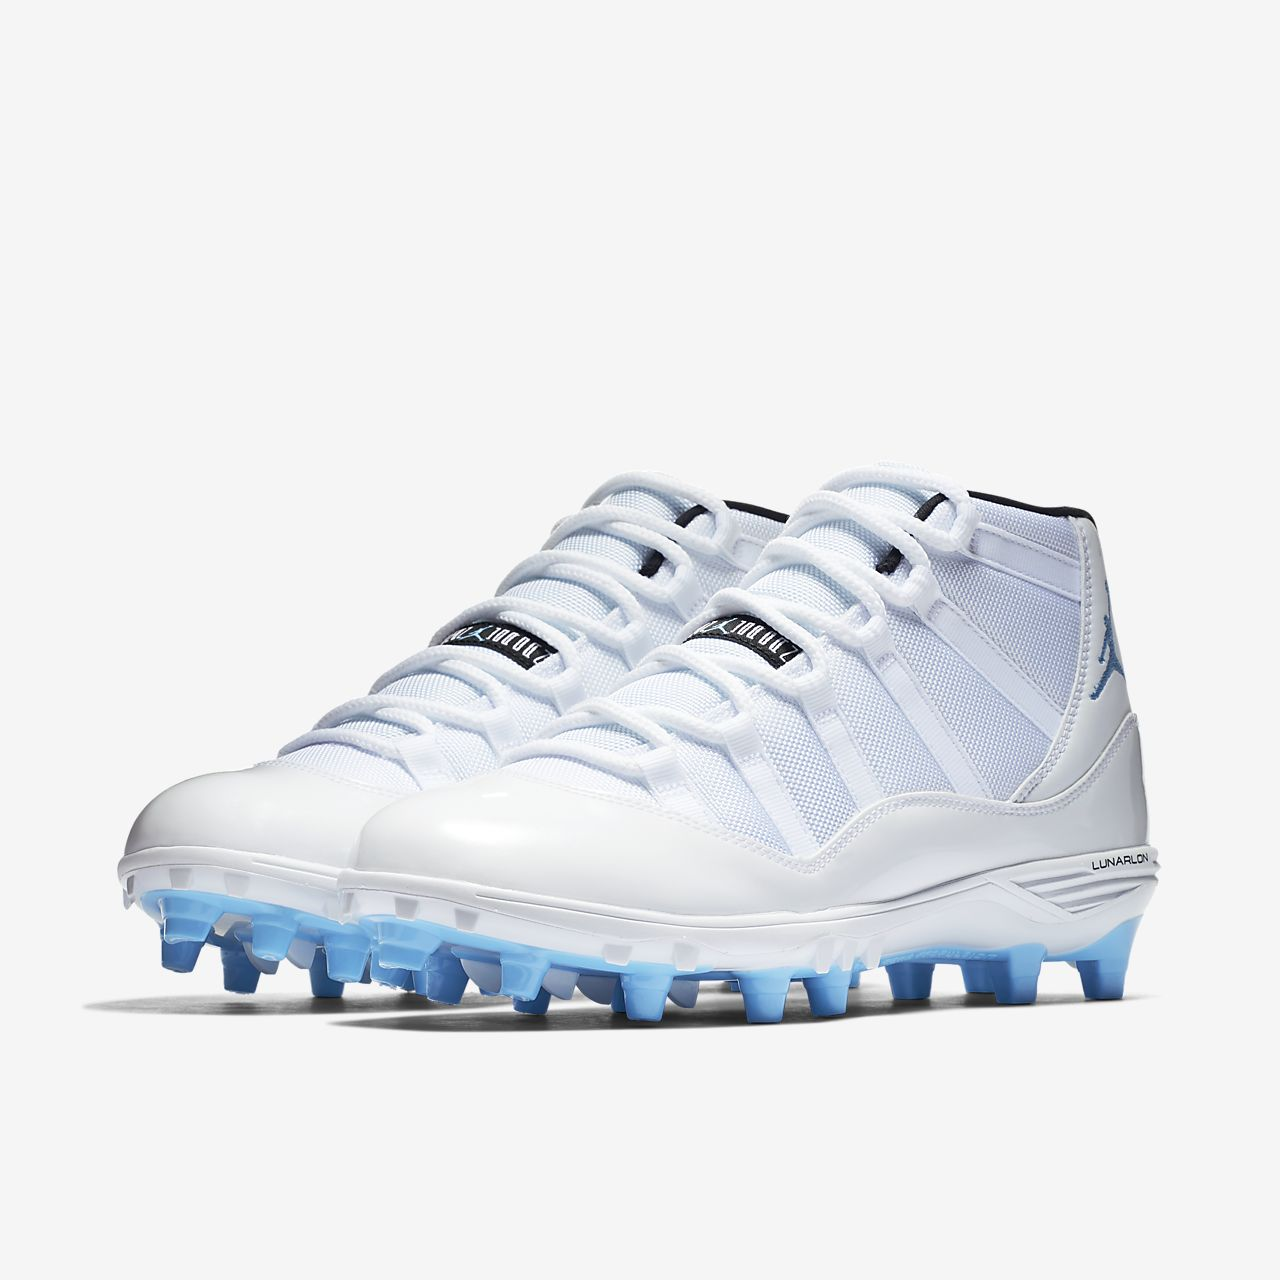 finest selection 5c346 a27c3 ... Jordan XI Retro TD Men s Football Cleat